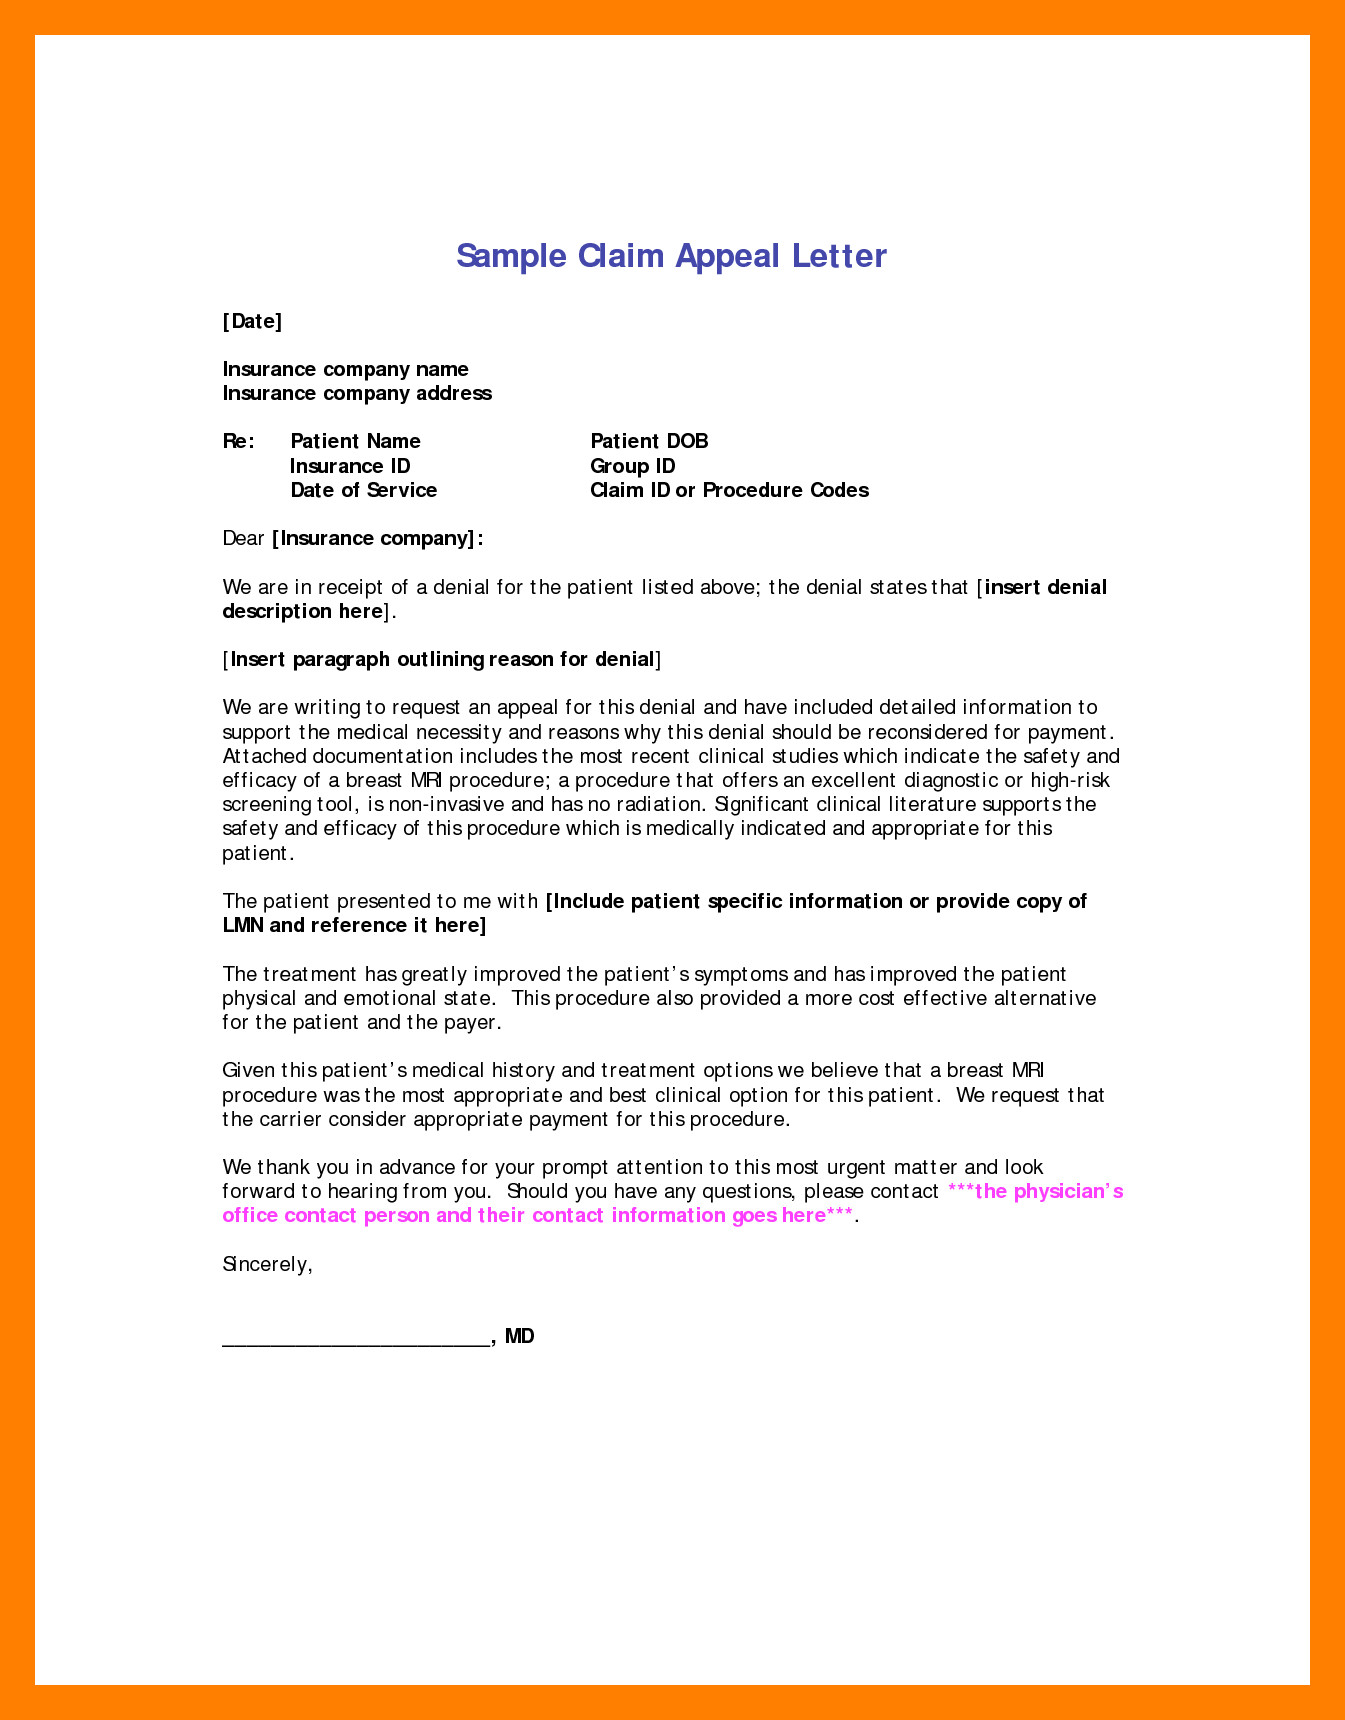 Sample Appeal Letter format 6 Sample Letter Of Appeal for Reconsideration